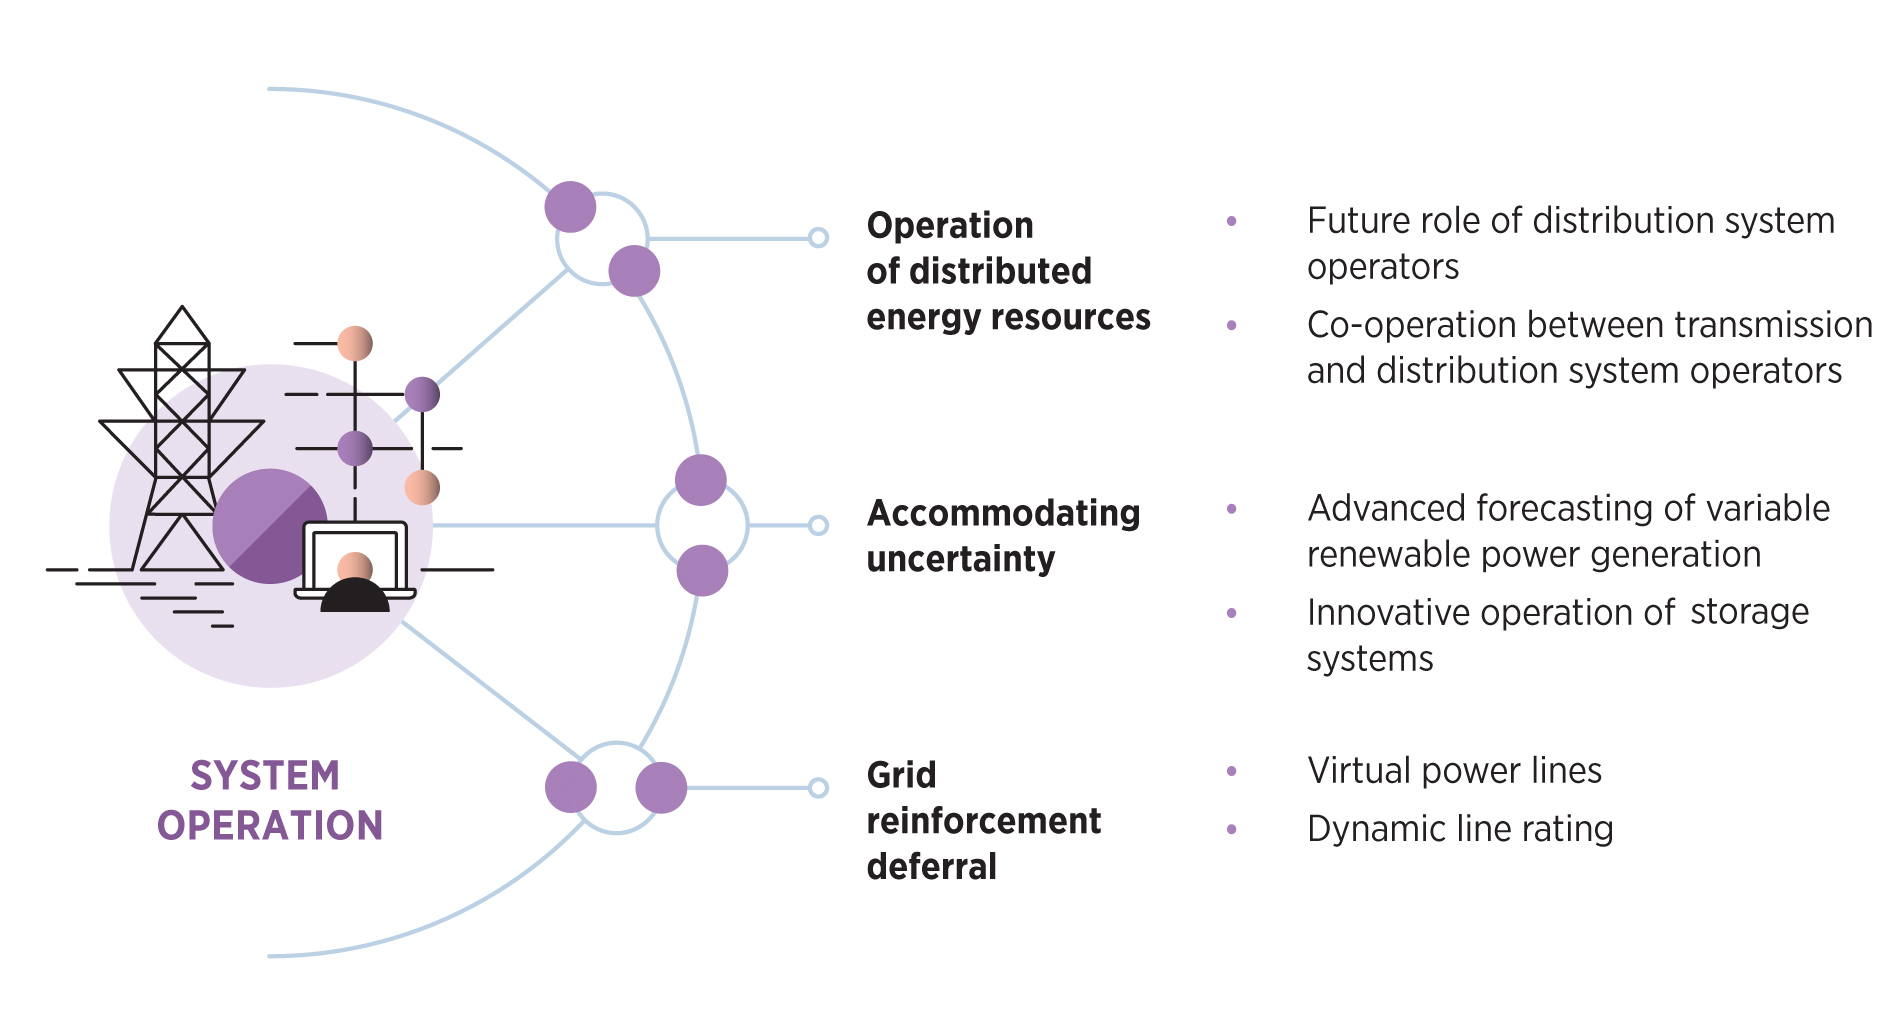 Fig. 4. System innovations in operation of the power system. Source: IRENA - Innovation landscape for a renewable-powered future, February 2019.